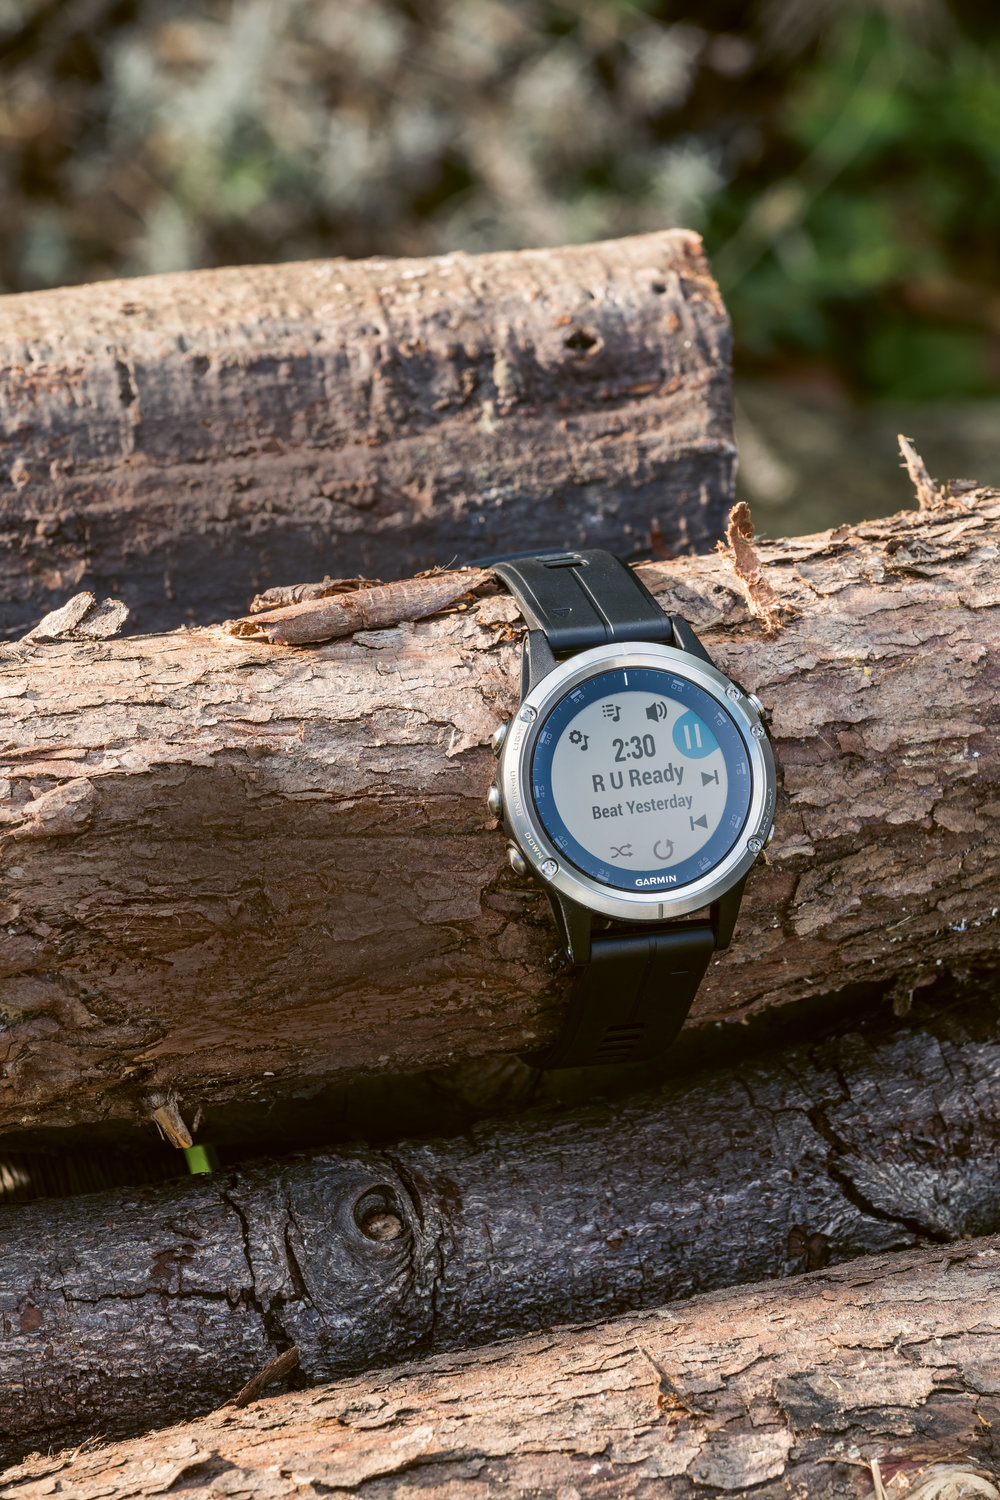 GARMIN_WATCH_009.jpg